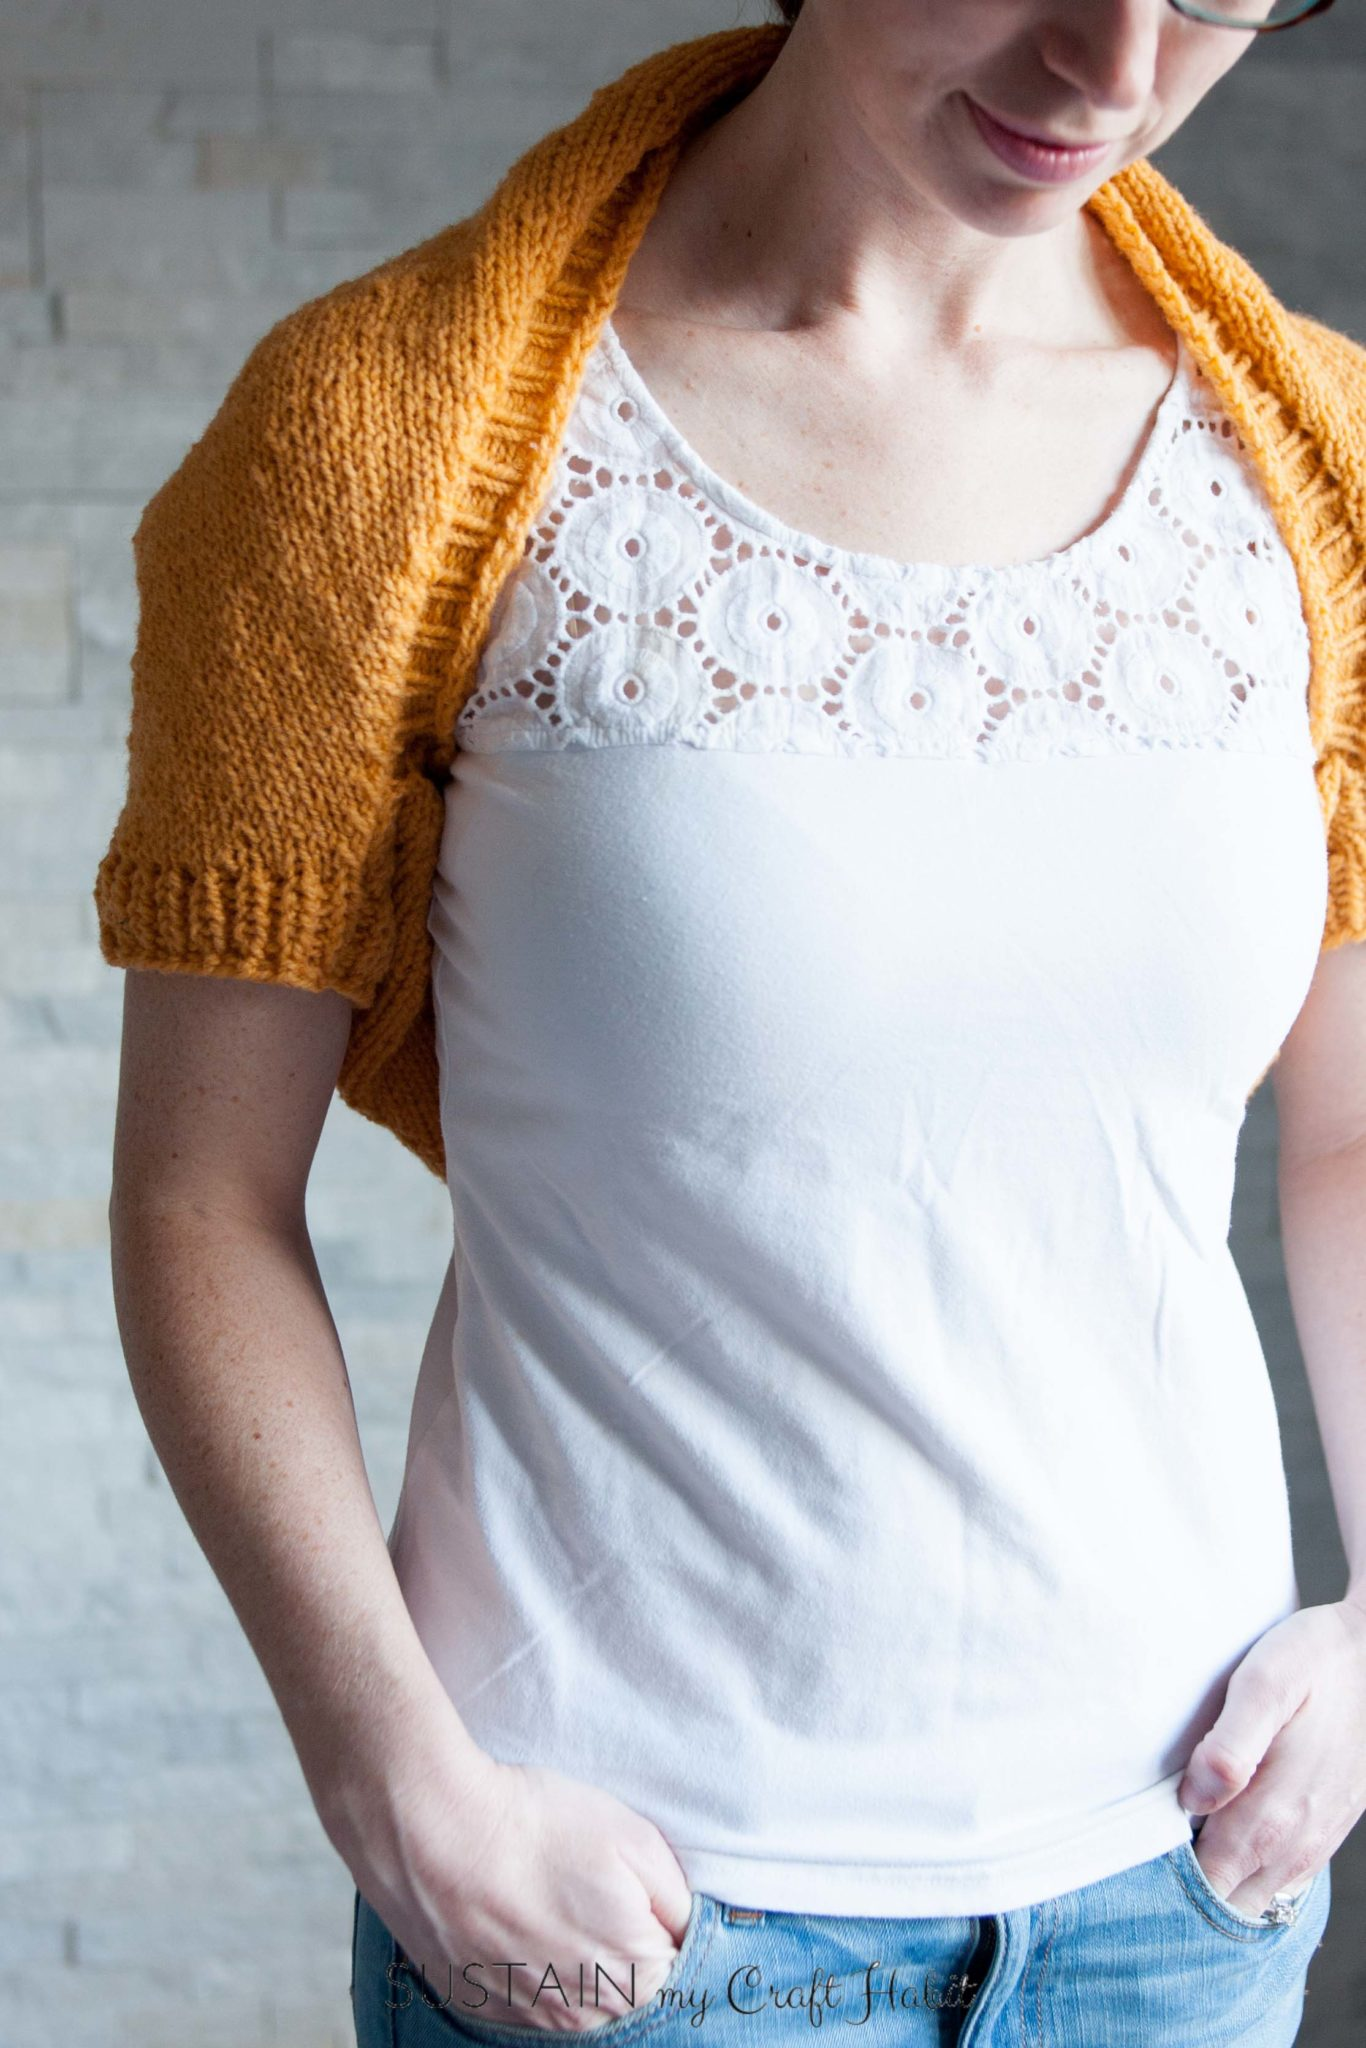 Beautiful and bright simple Sunrise Shrug free knitting pattern from SustainMyCraftHabit. This lightweight wool knit shrug is perfect for cool spring days and autumn nights.